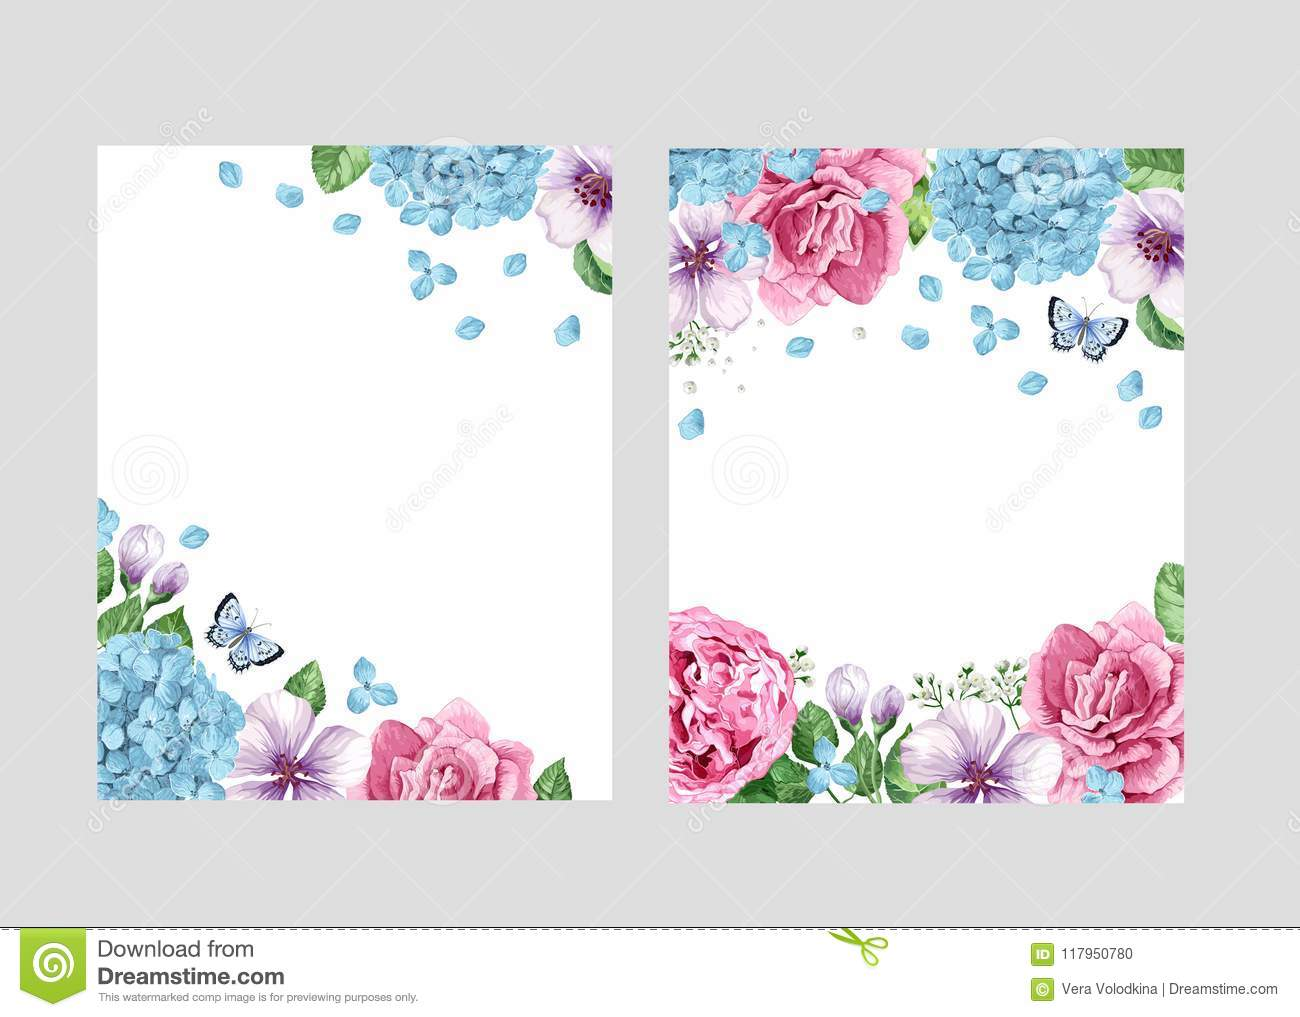 Blue Wedding Invitation Background: Floral Blank Template Set. Flowers In Watercolor Style